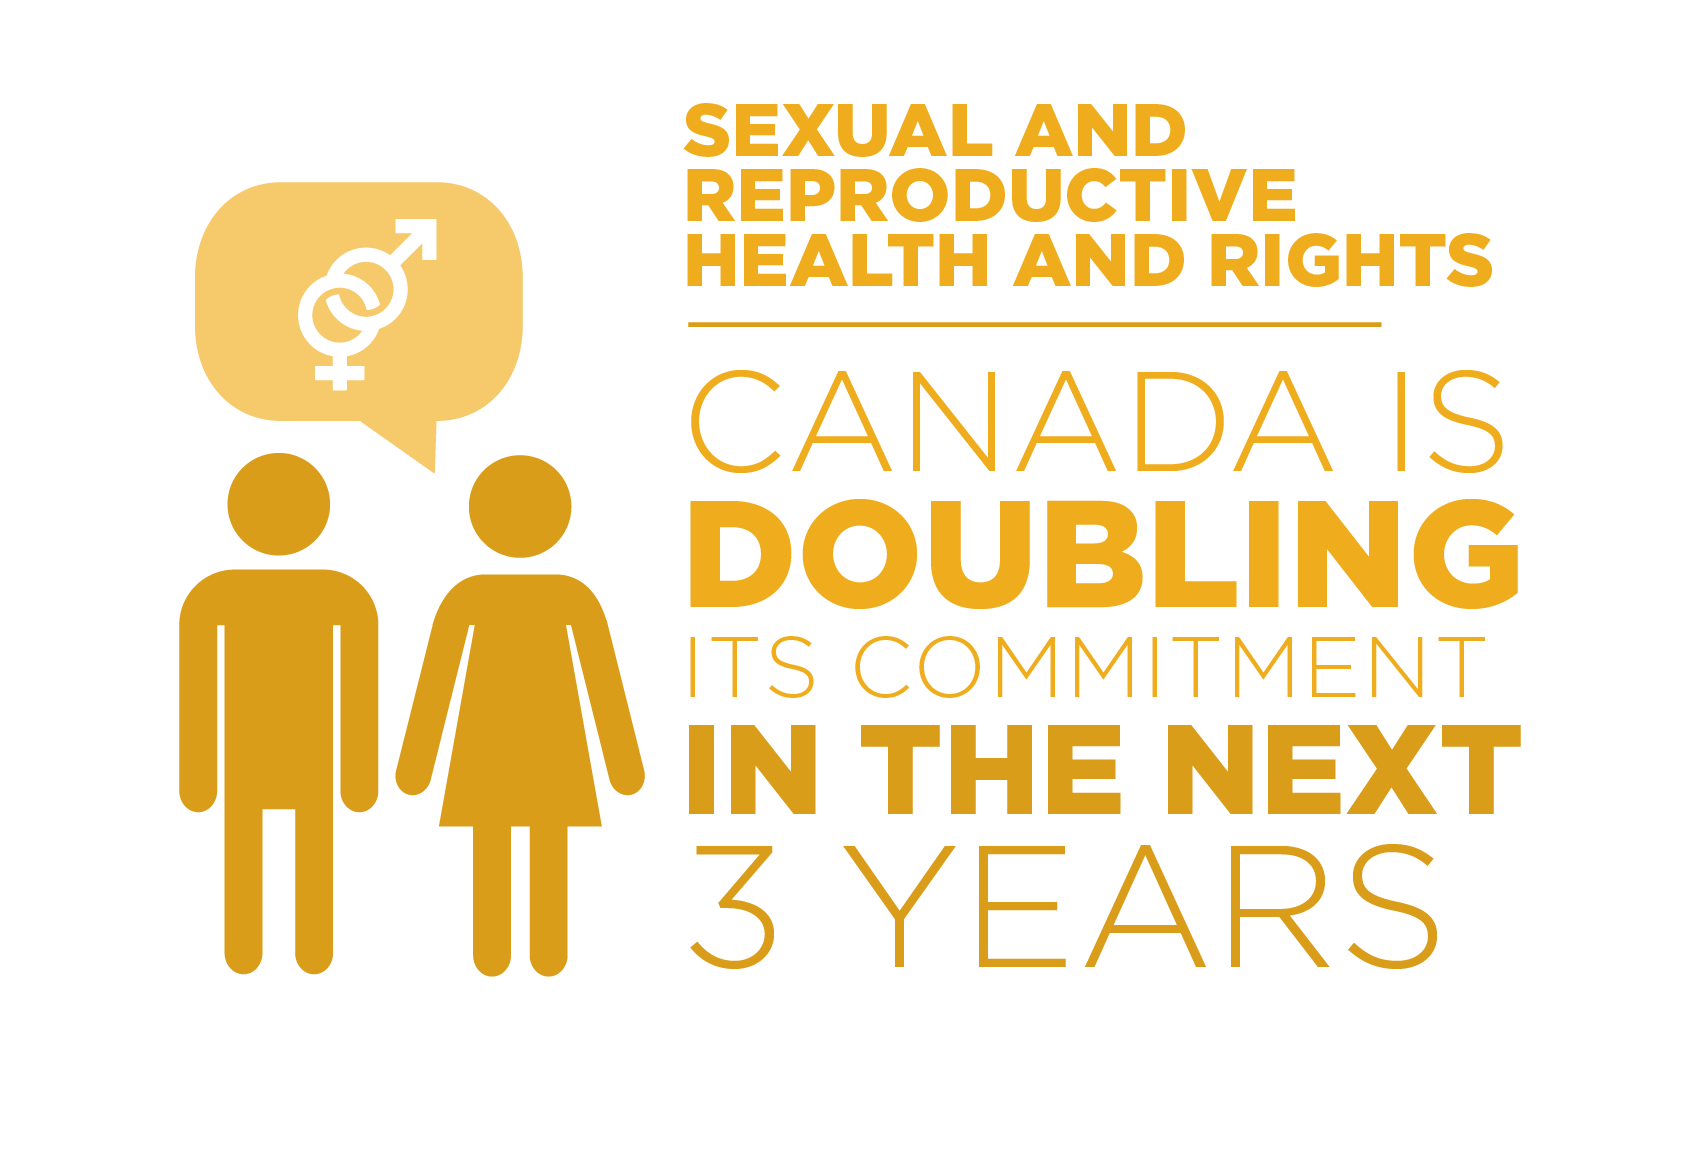 Reproductive Health & Rights: Canada is doubling its commitment in the next 3 years.